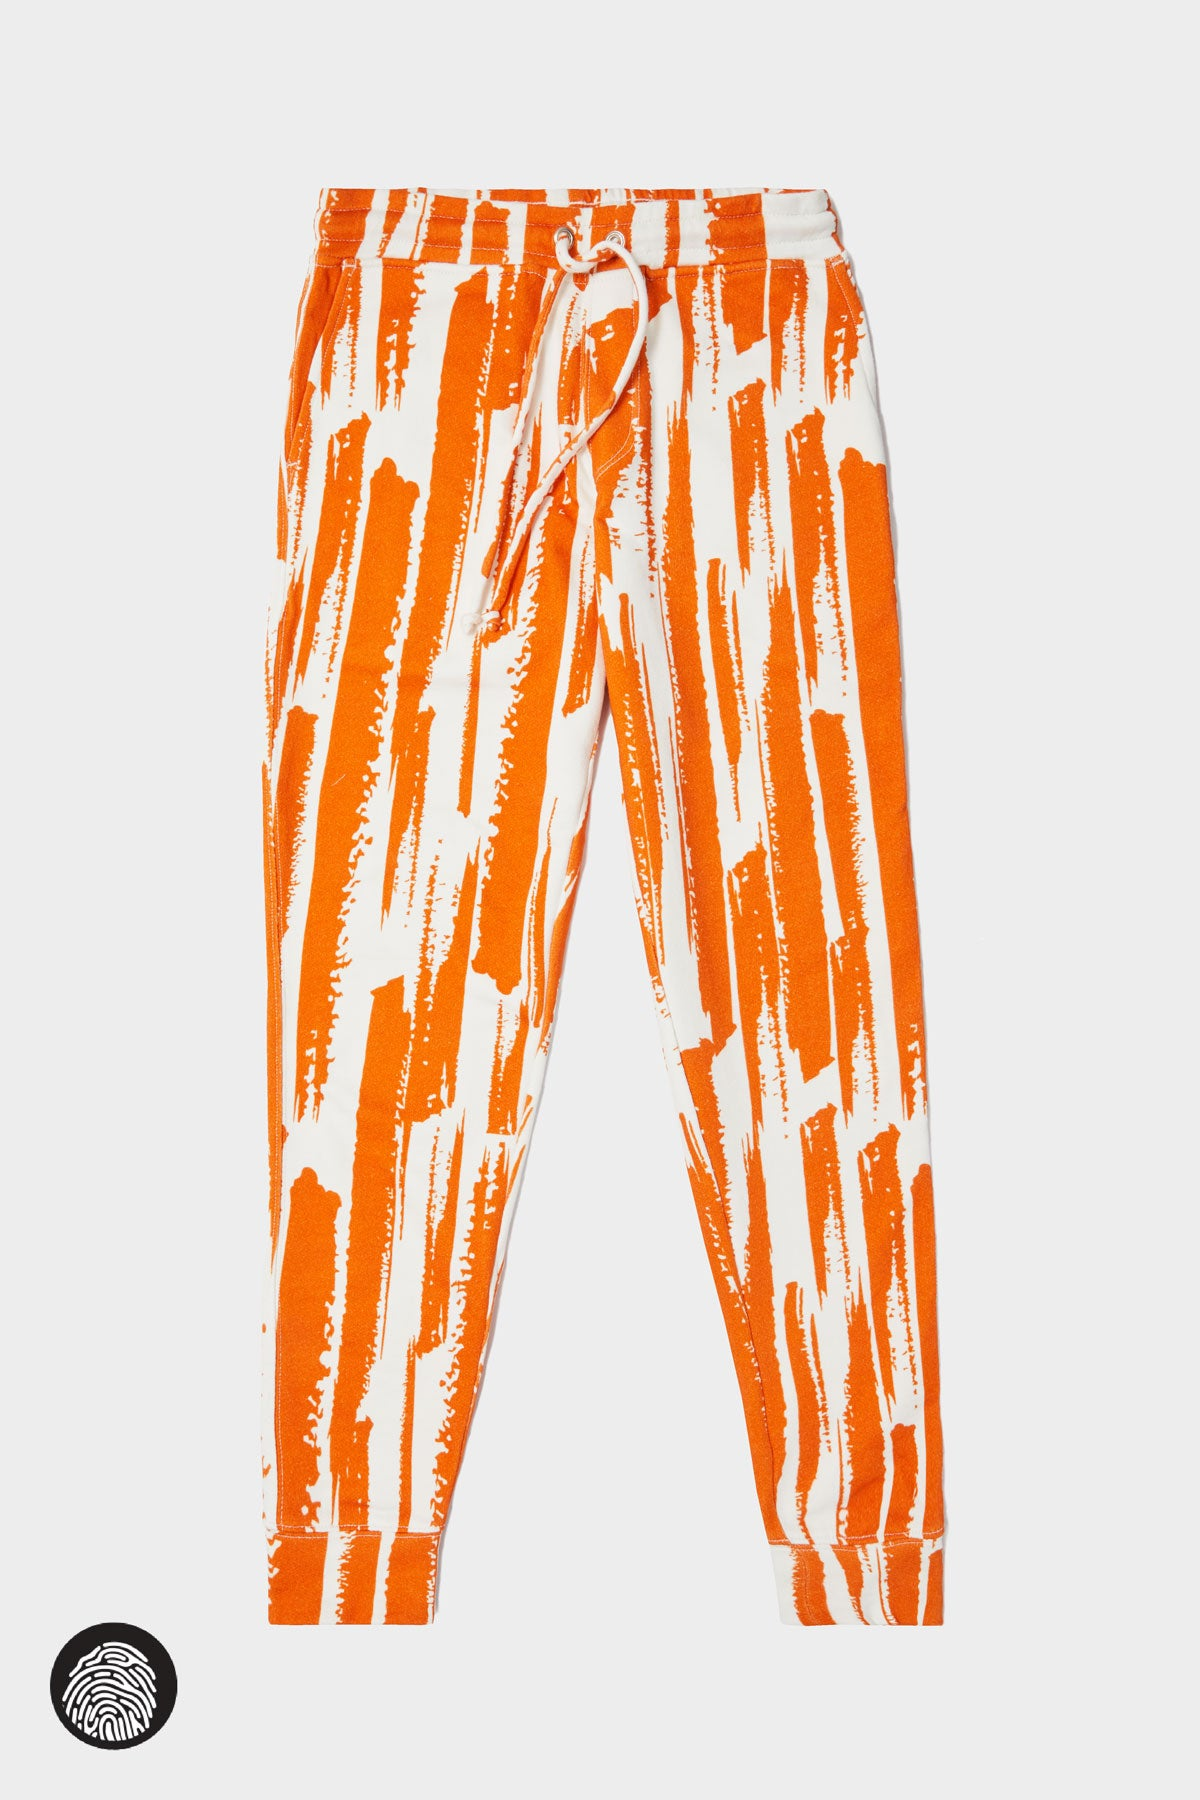 BASIC JOGGER / BRUSH STROKE SAFFRON | Megan Renee